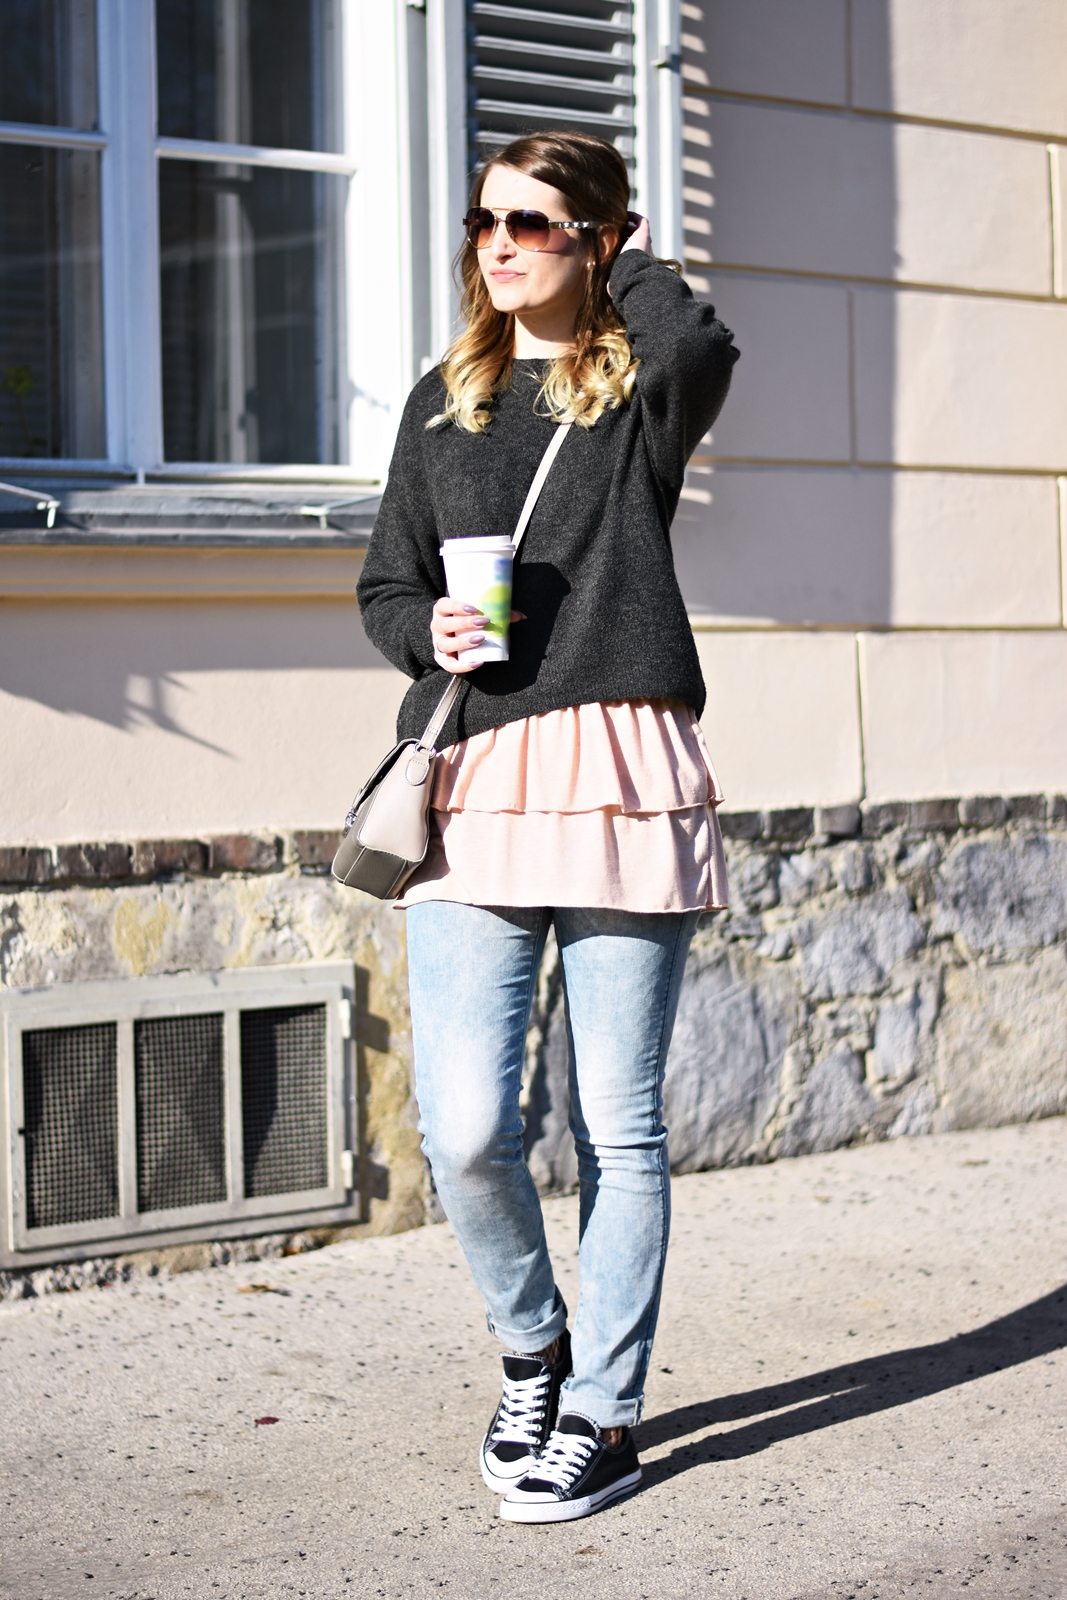 Fishnet Tights and Sneakers - Frühlingsoutfit - Spring Layering - Fashionladyloves